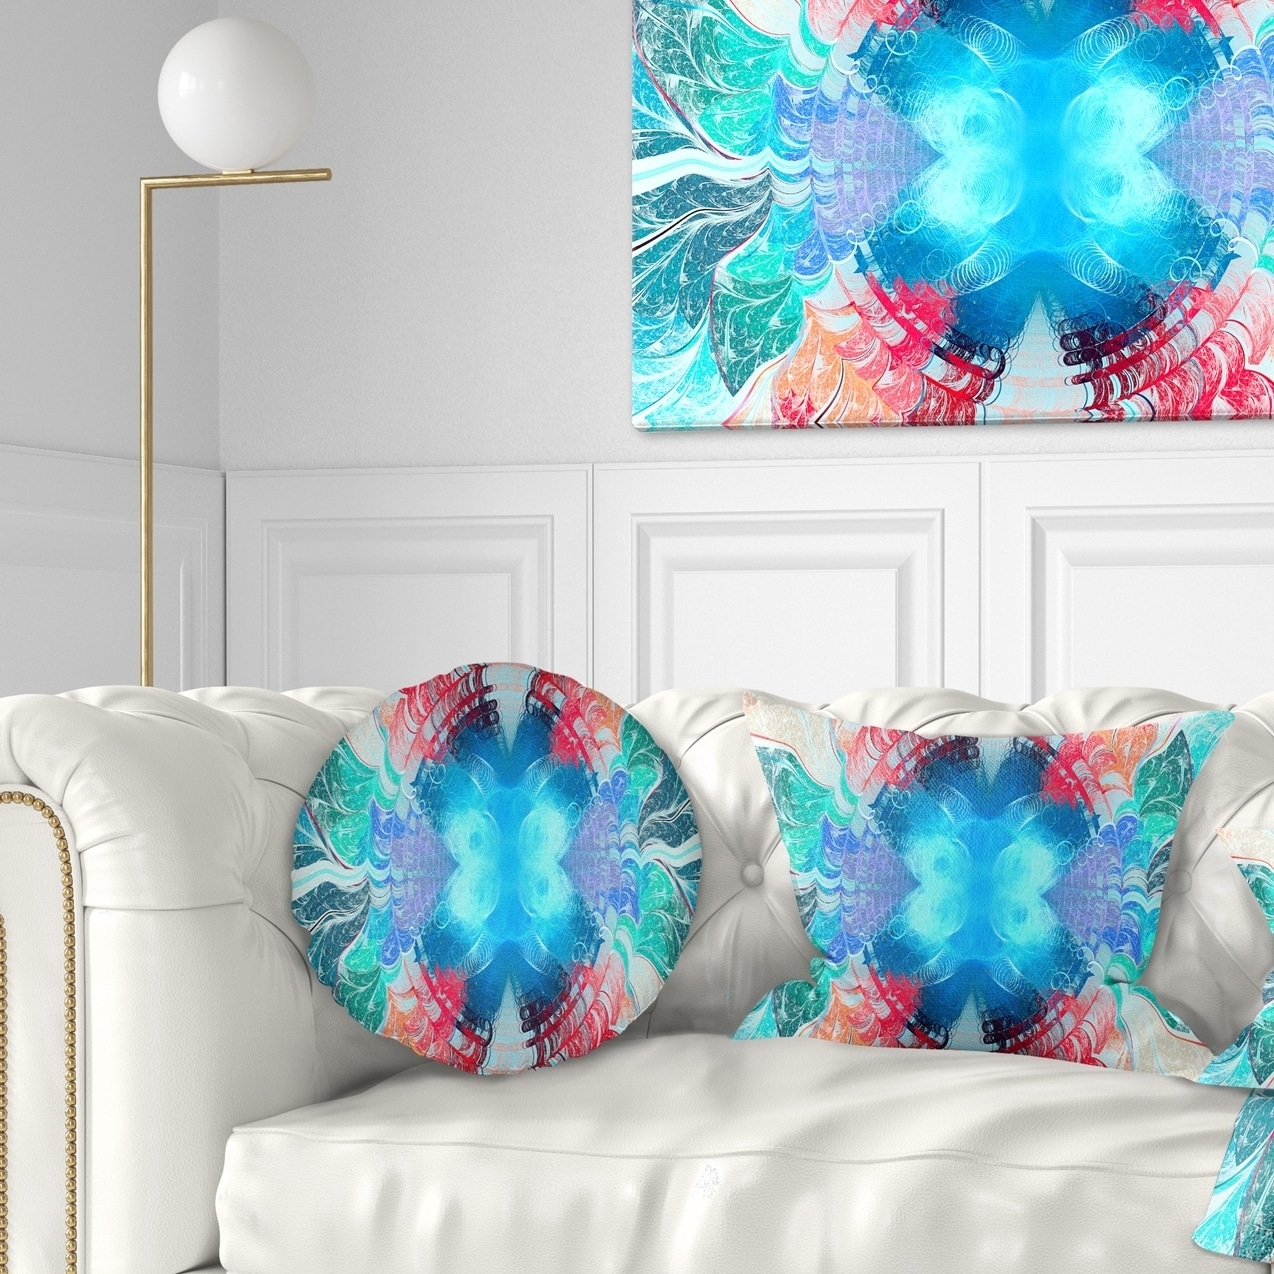 Design Art Designart Extraordinary Fractal Blue Texture Abstract Throw Pillow Walmart Com